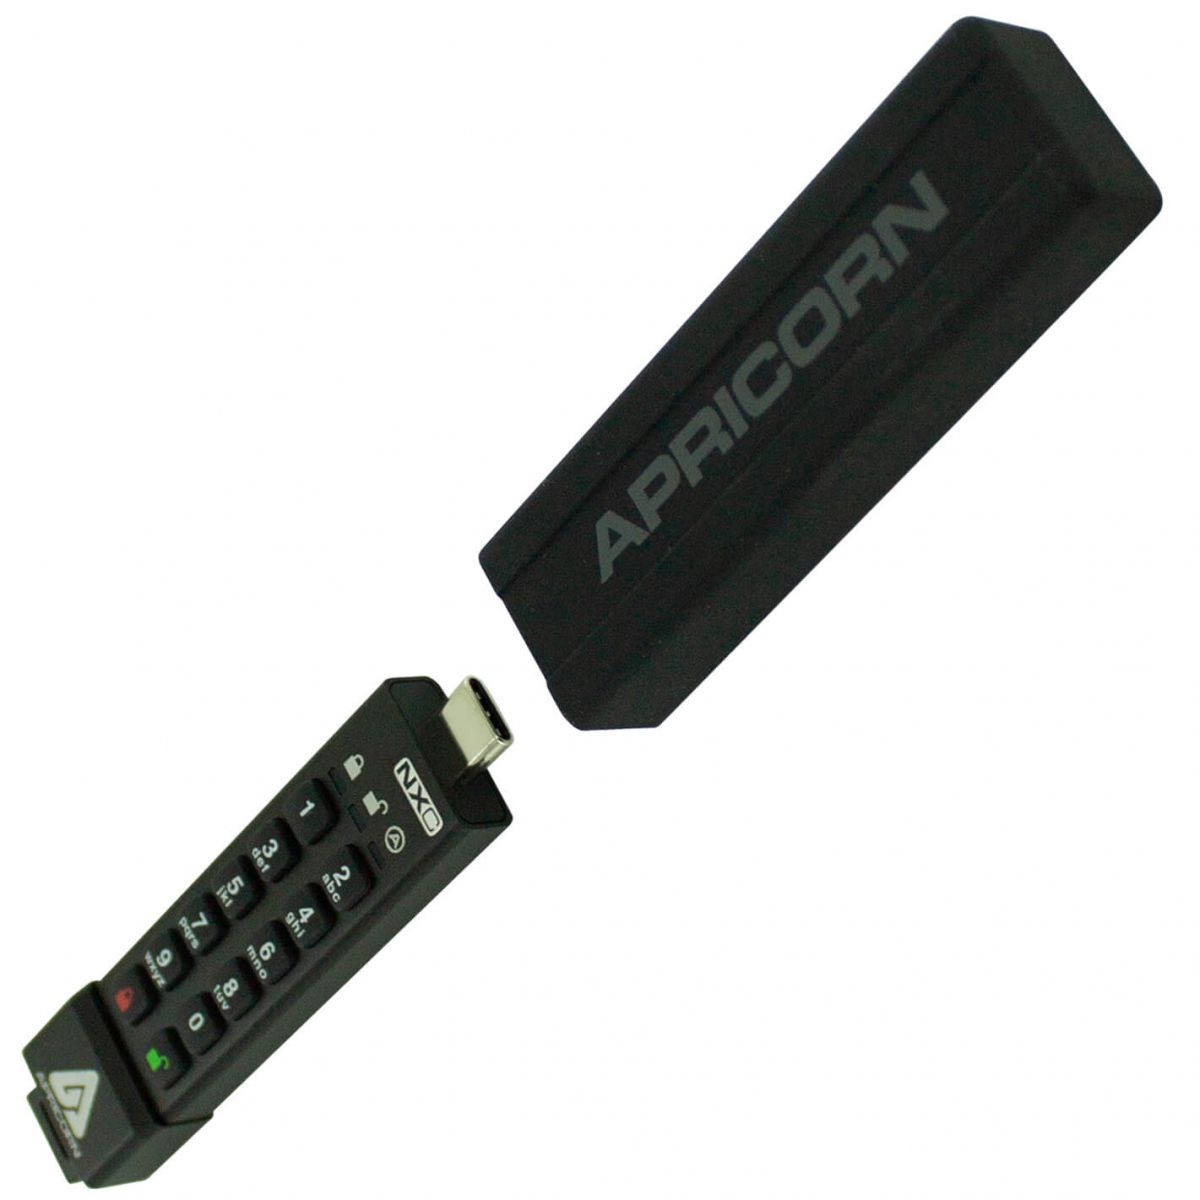 ask3nxc 4gb usbstick met usbc